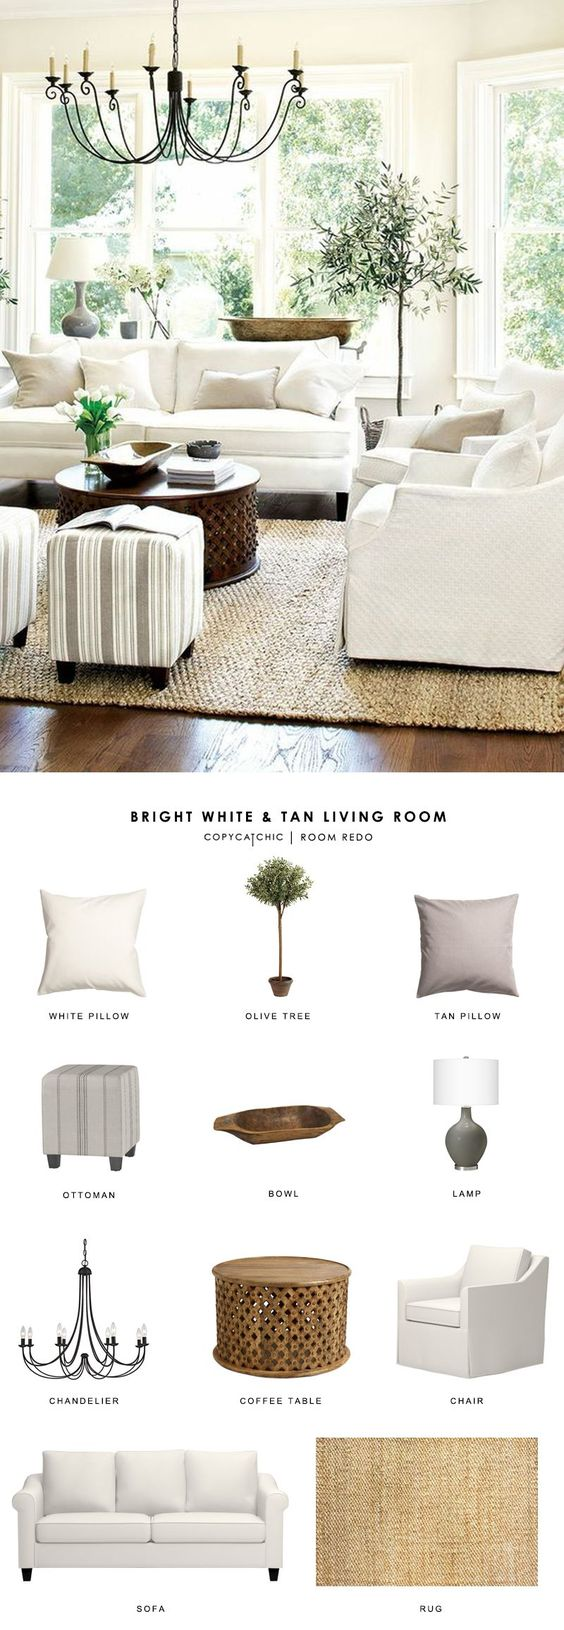 Copy Cat Chic Room Redo | Bright White and Tan Living Room